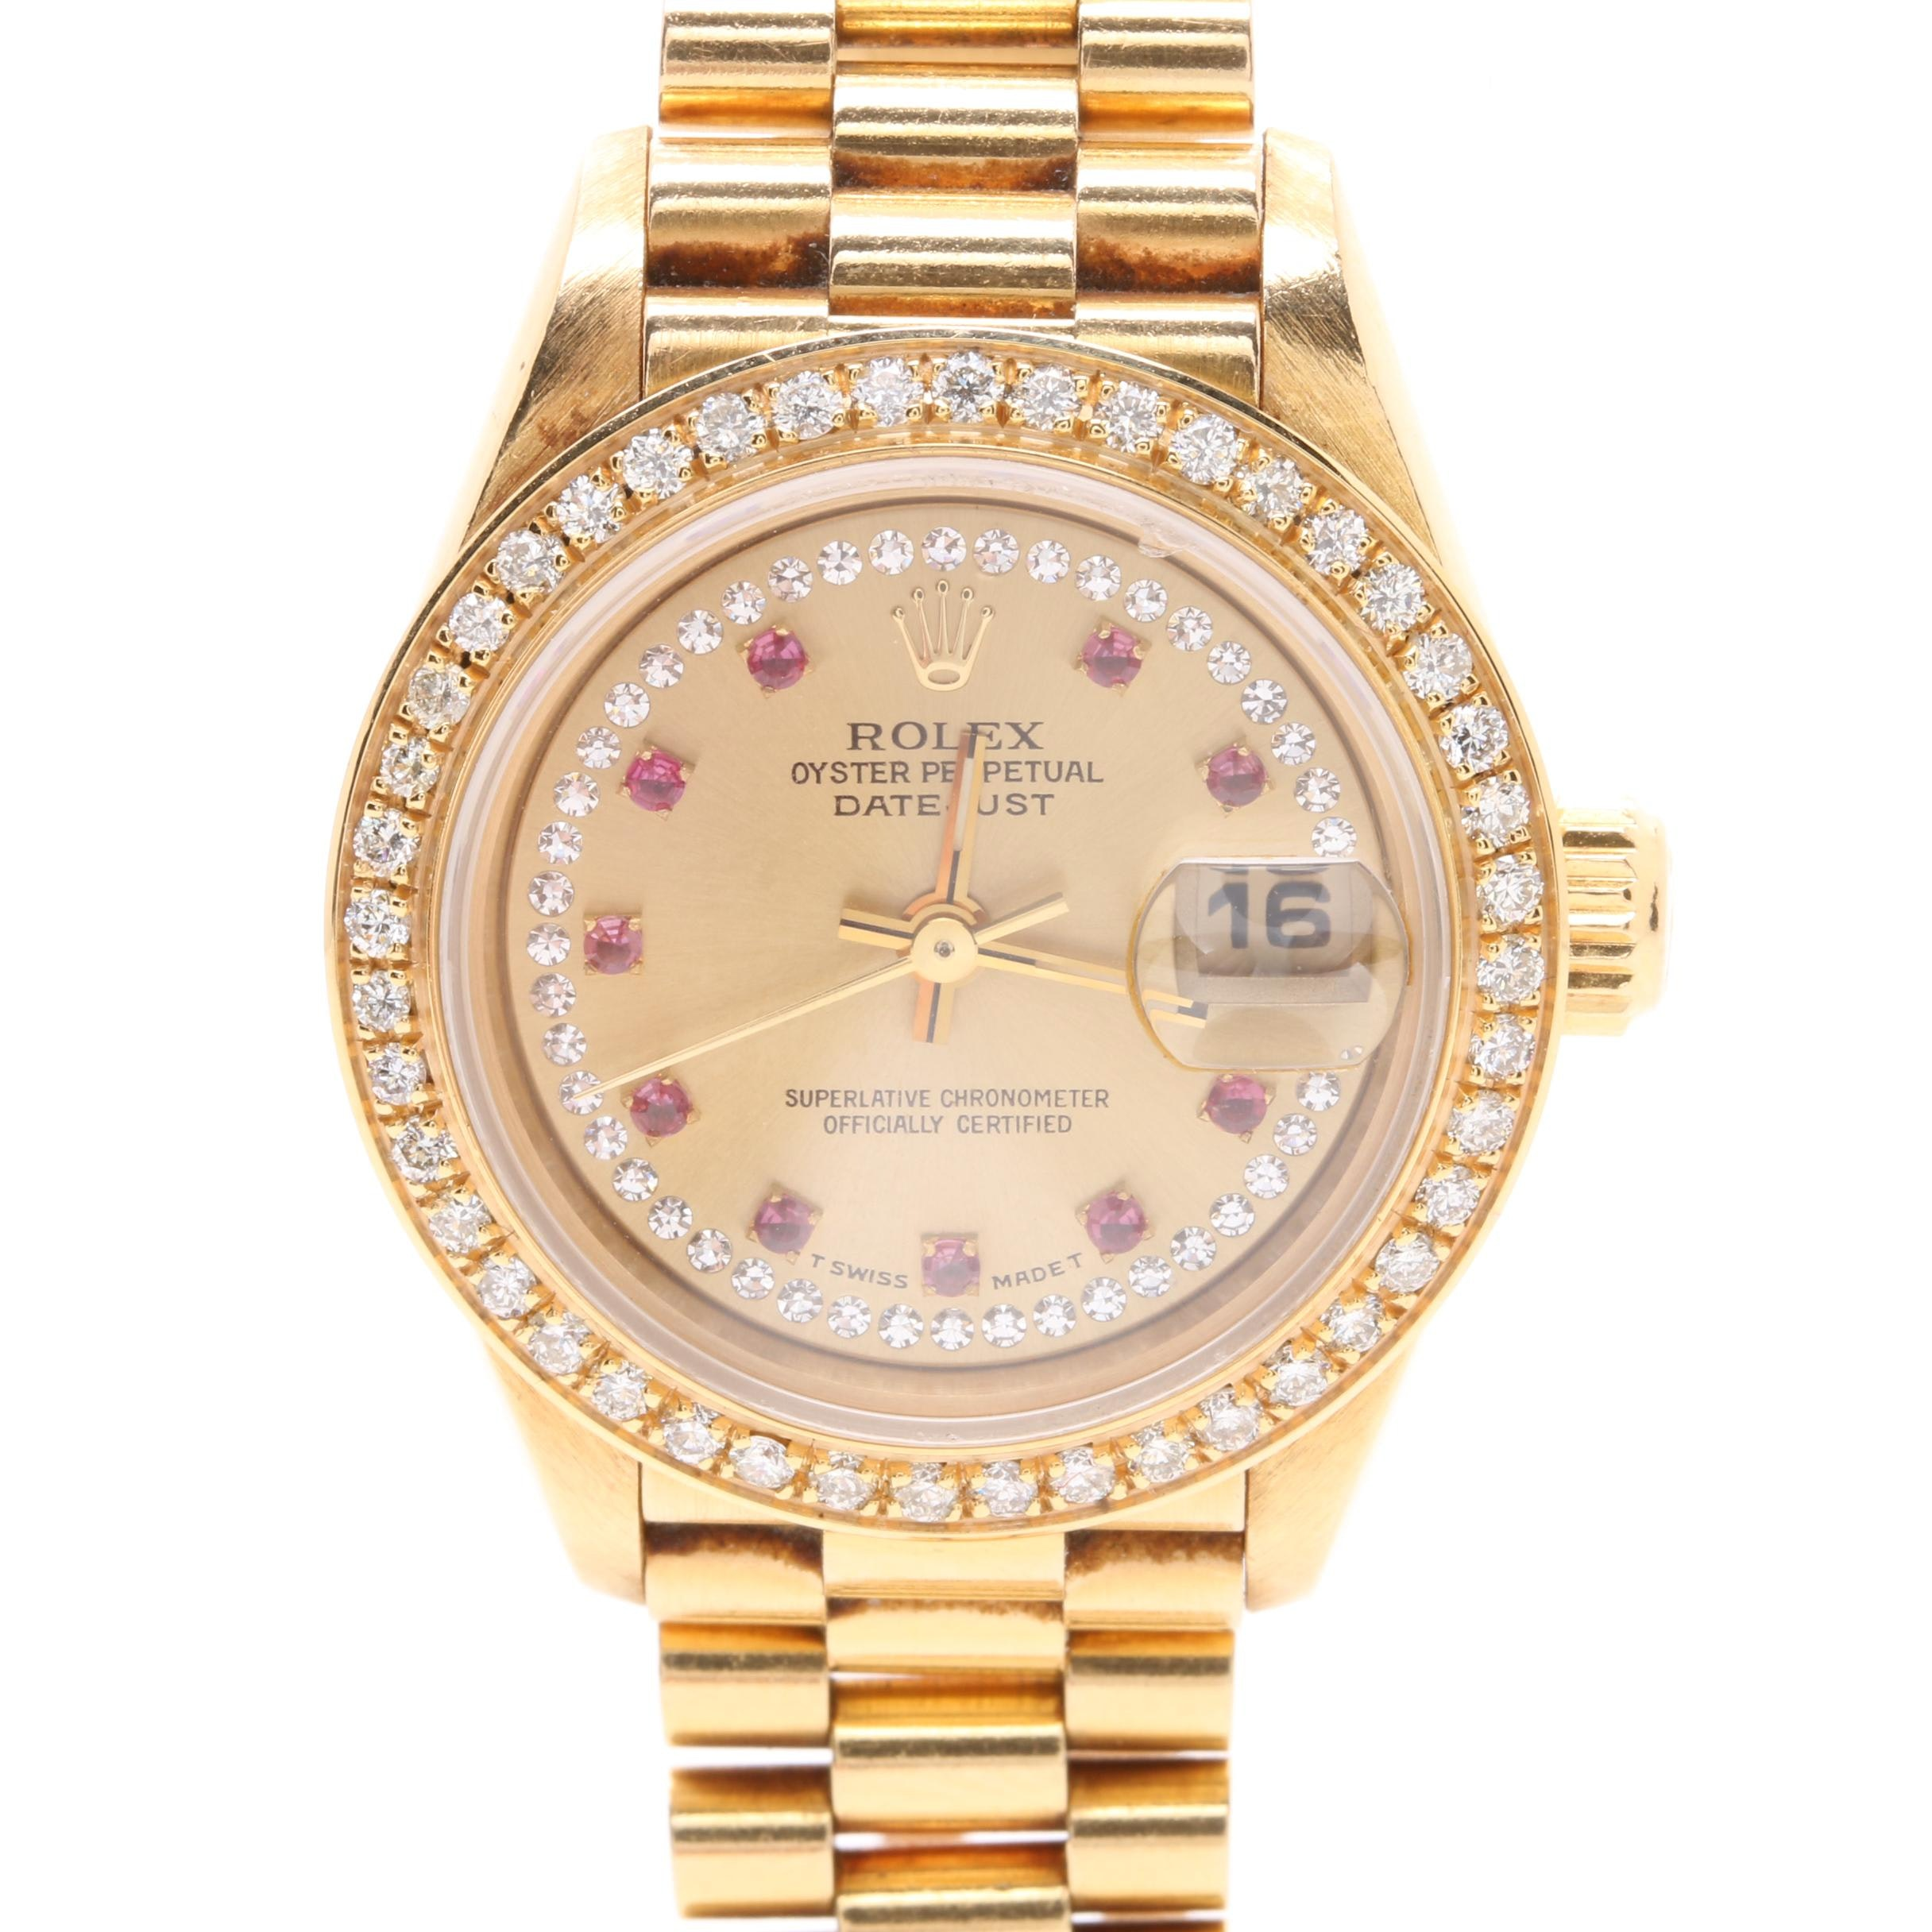 "Rolex ""Oyster Perpetual Datejust"" 18K Yellow Gold Diamond and Ruby Wristwatch"